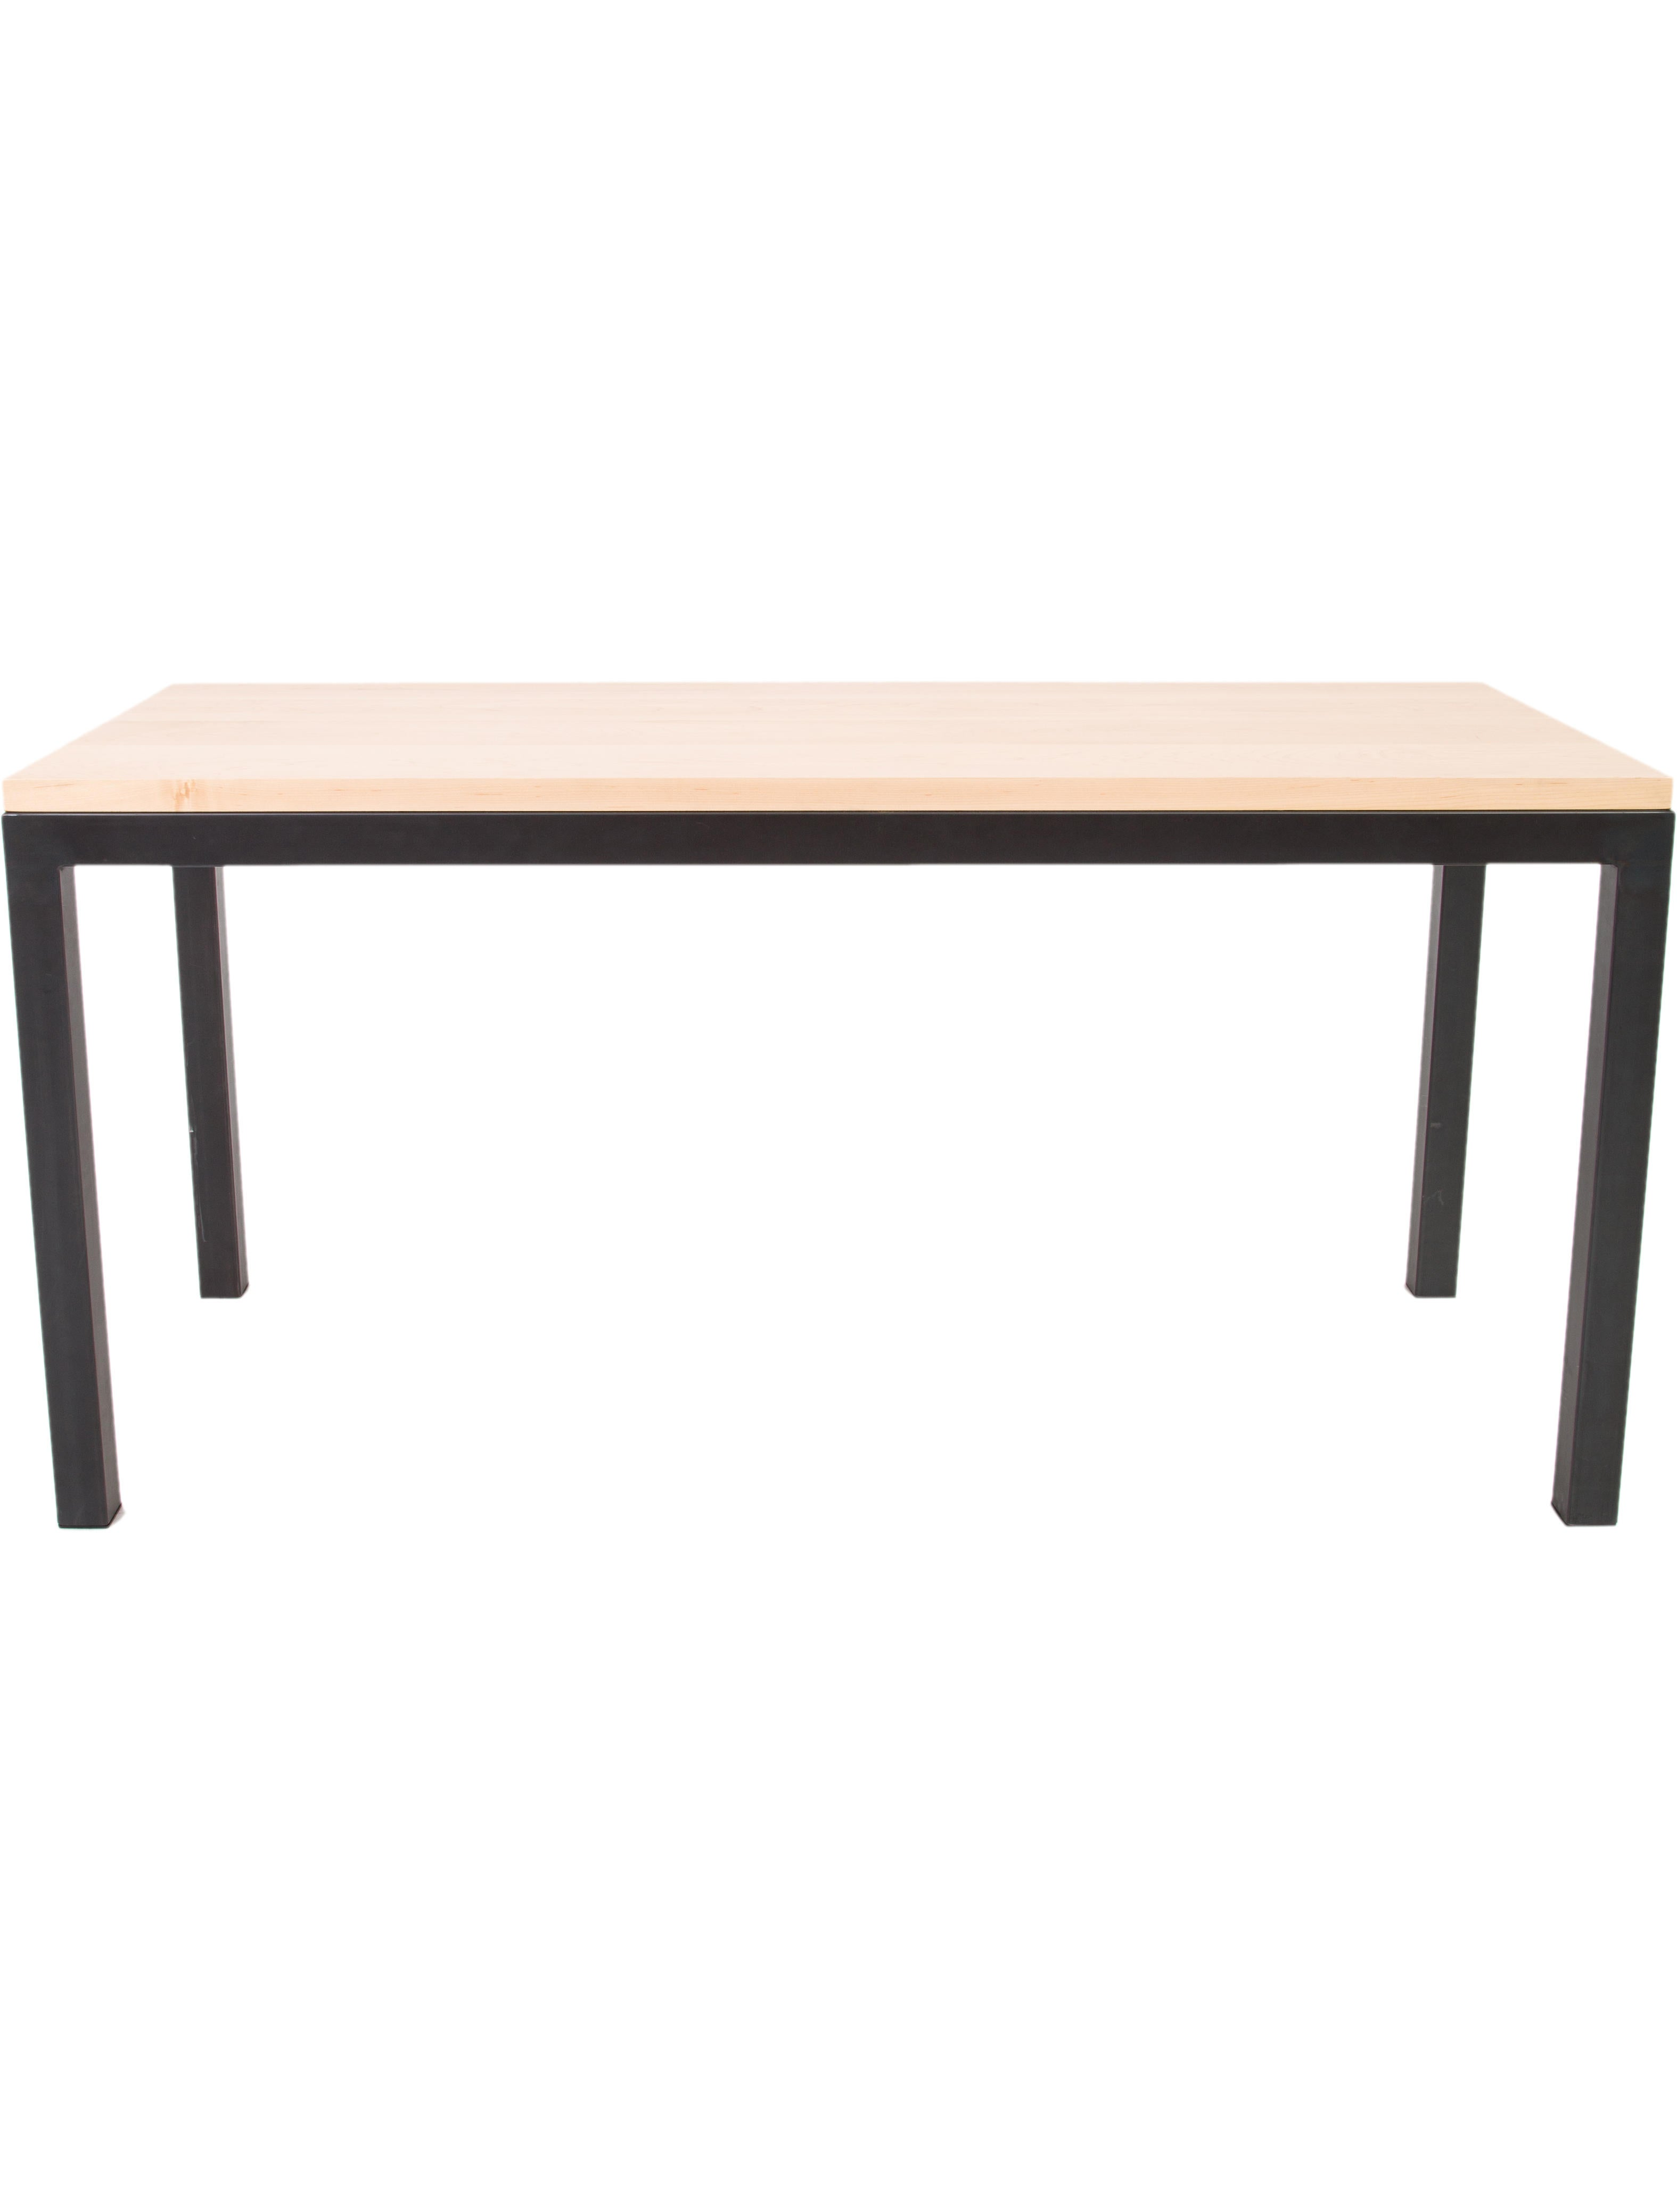 Room Board Table Furniture Table20249 The Realreal